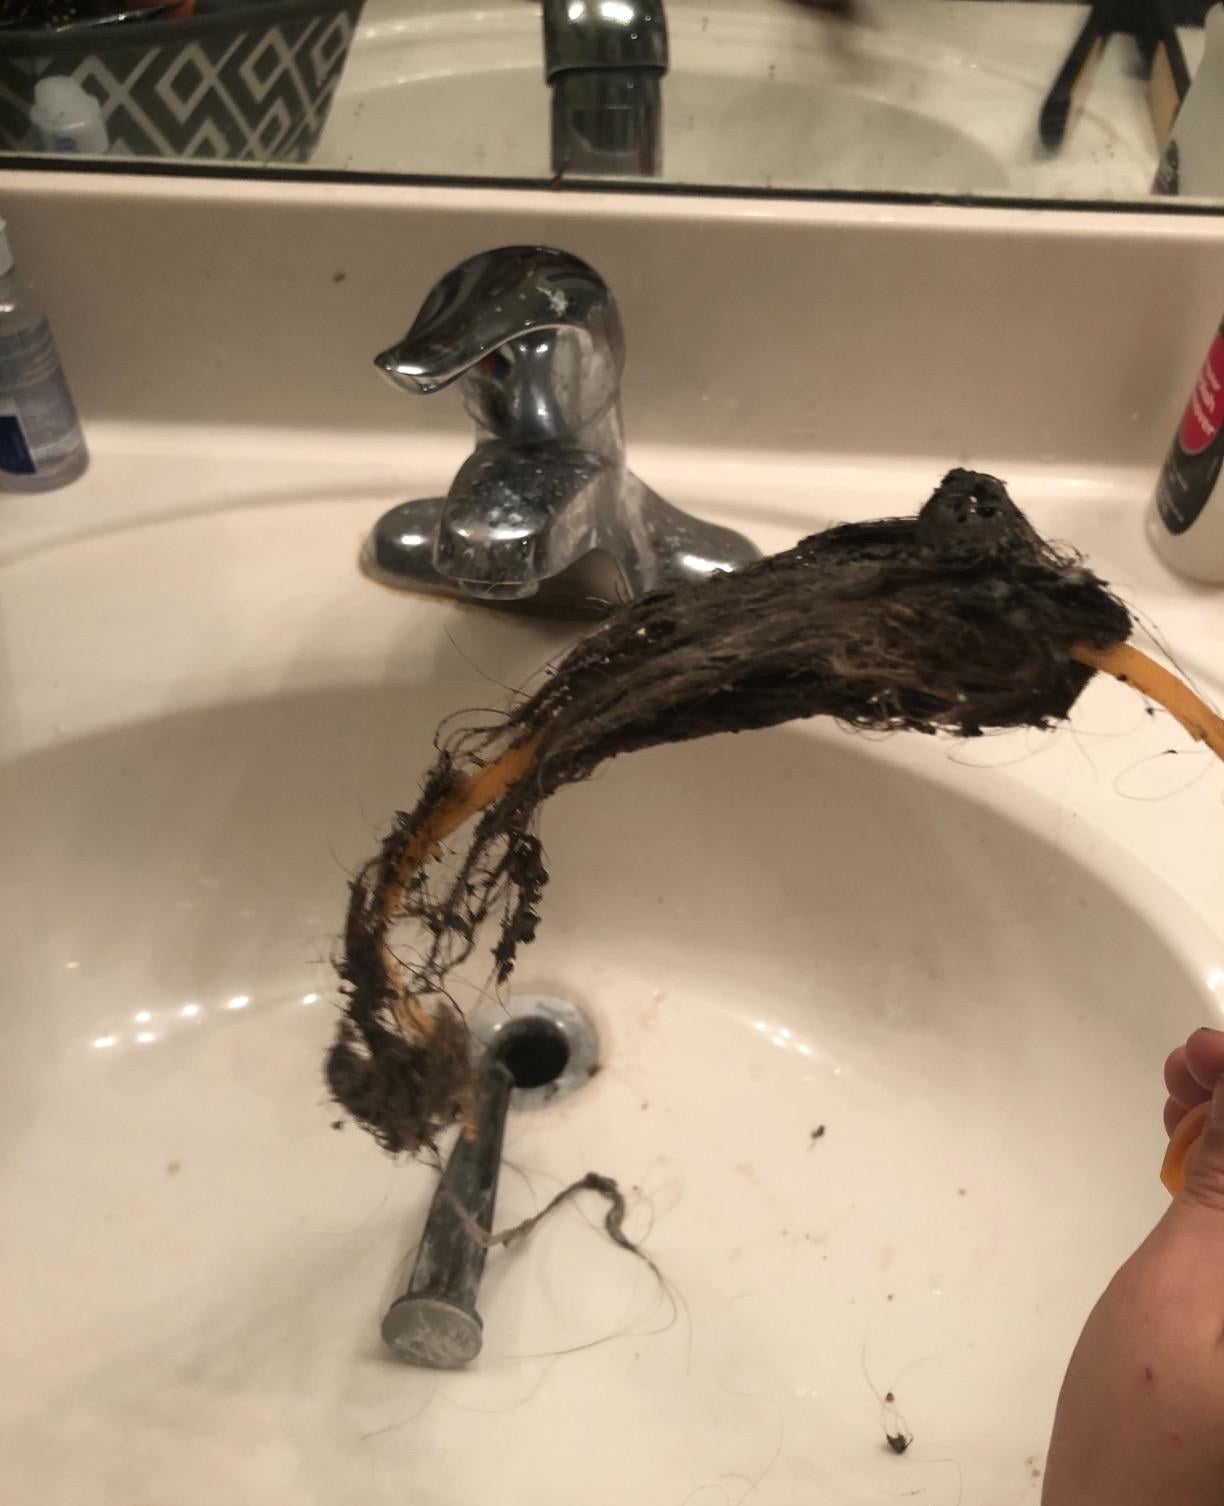 a reviewer's drain snake covered in hair after being used to unclog a bathroom sink